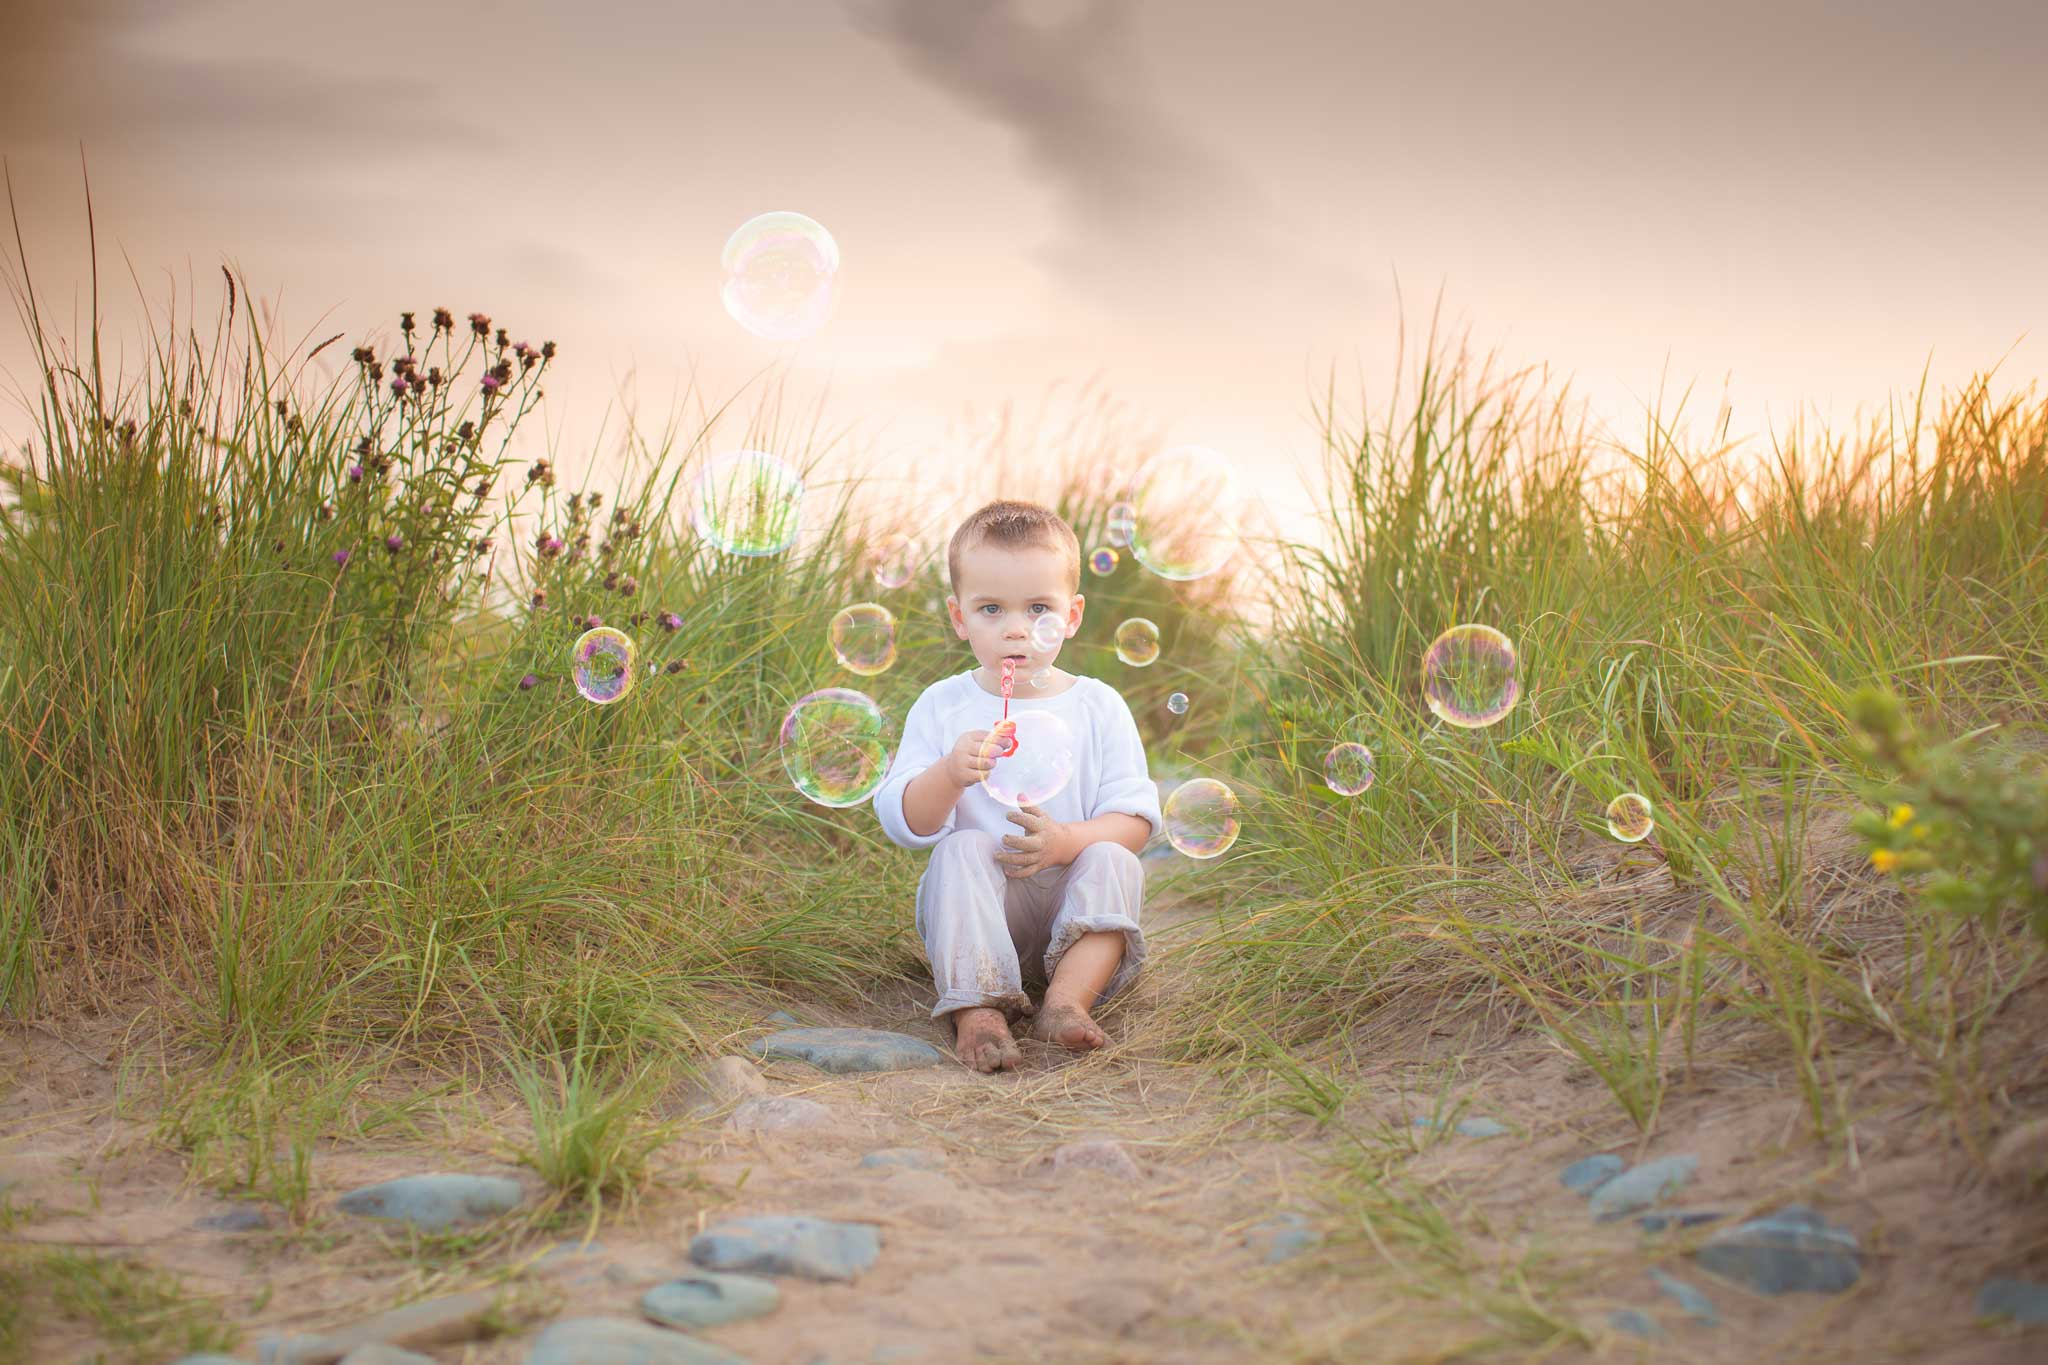 Boy blowing bubbles during evening at the beach